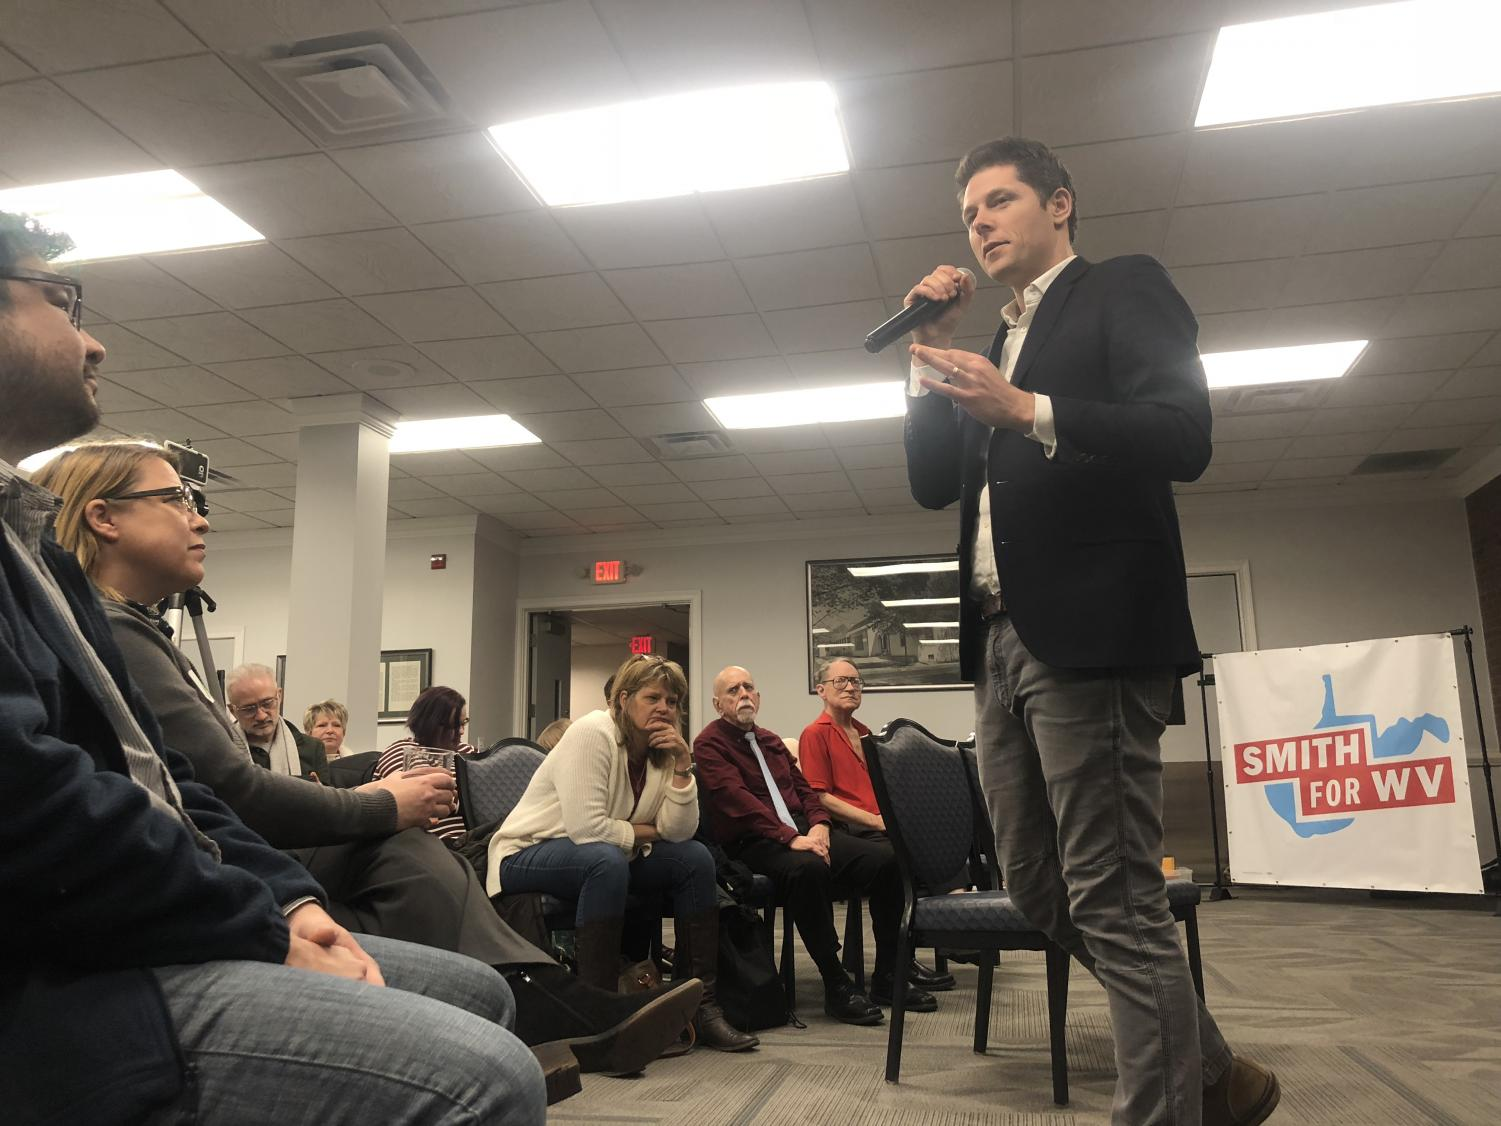 West Virginia gubernatorial candidate and former anti-poverty community organizer, Stephen Smith, addresses constituents at a recent town hall event in Marshall's Memorial Student Center.